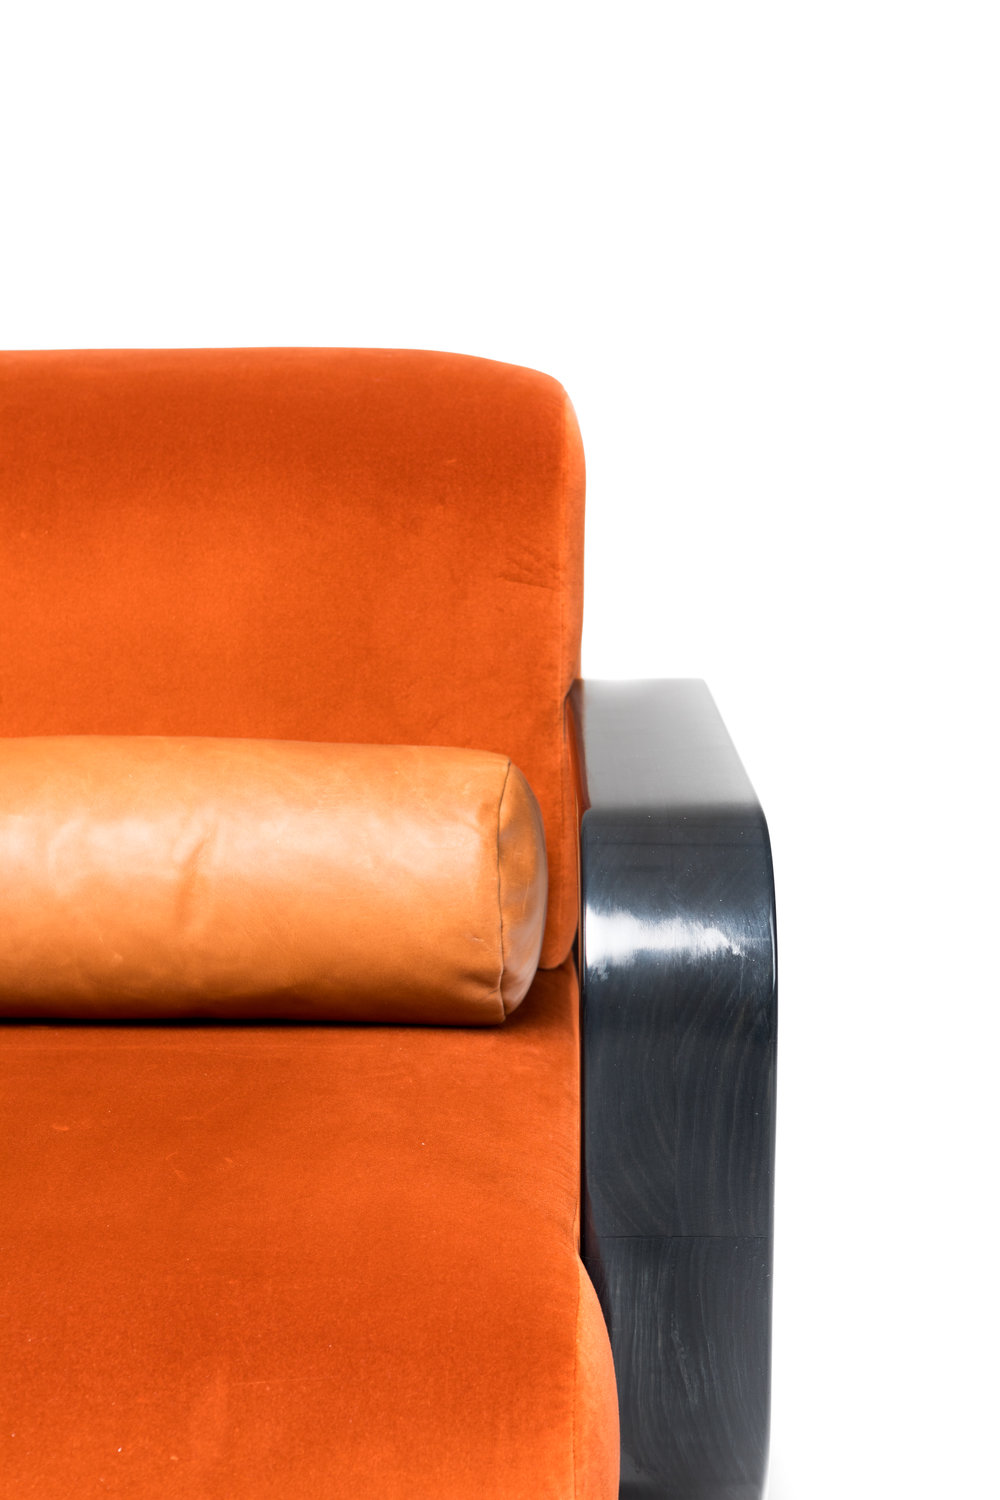 Marie-Burgos-Design.Cayenne-chair.close- up.MBcollection.jpg